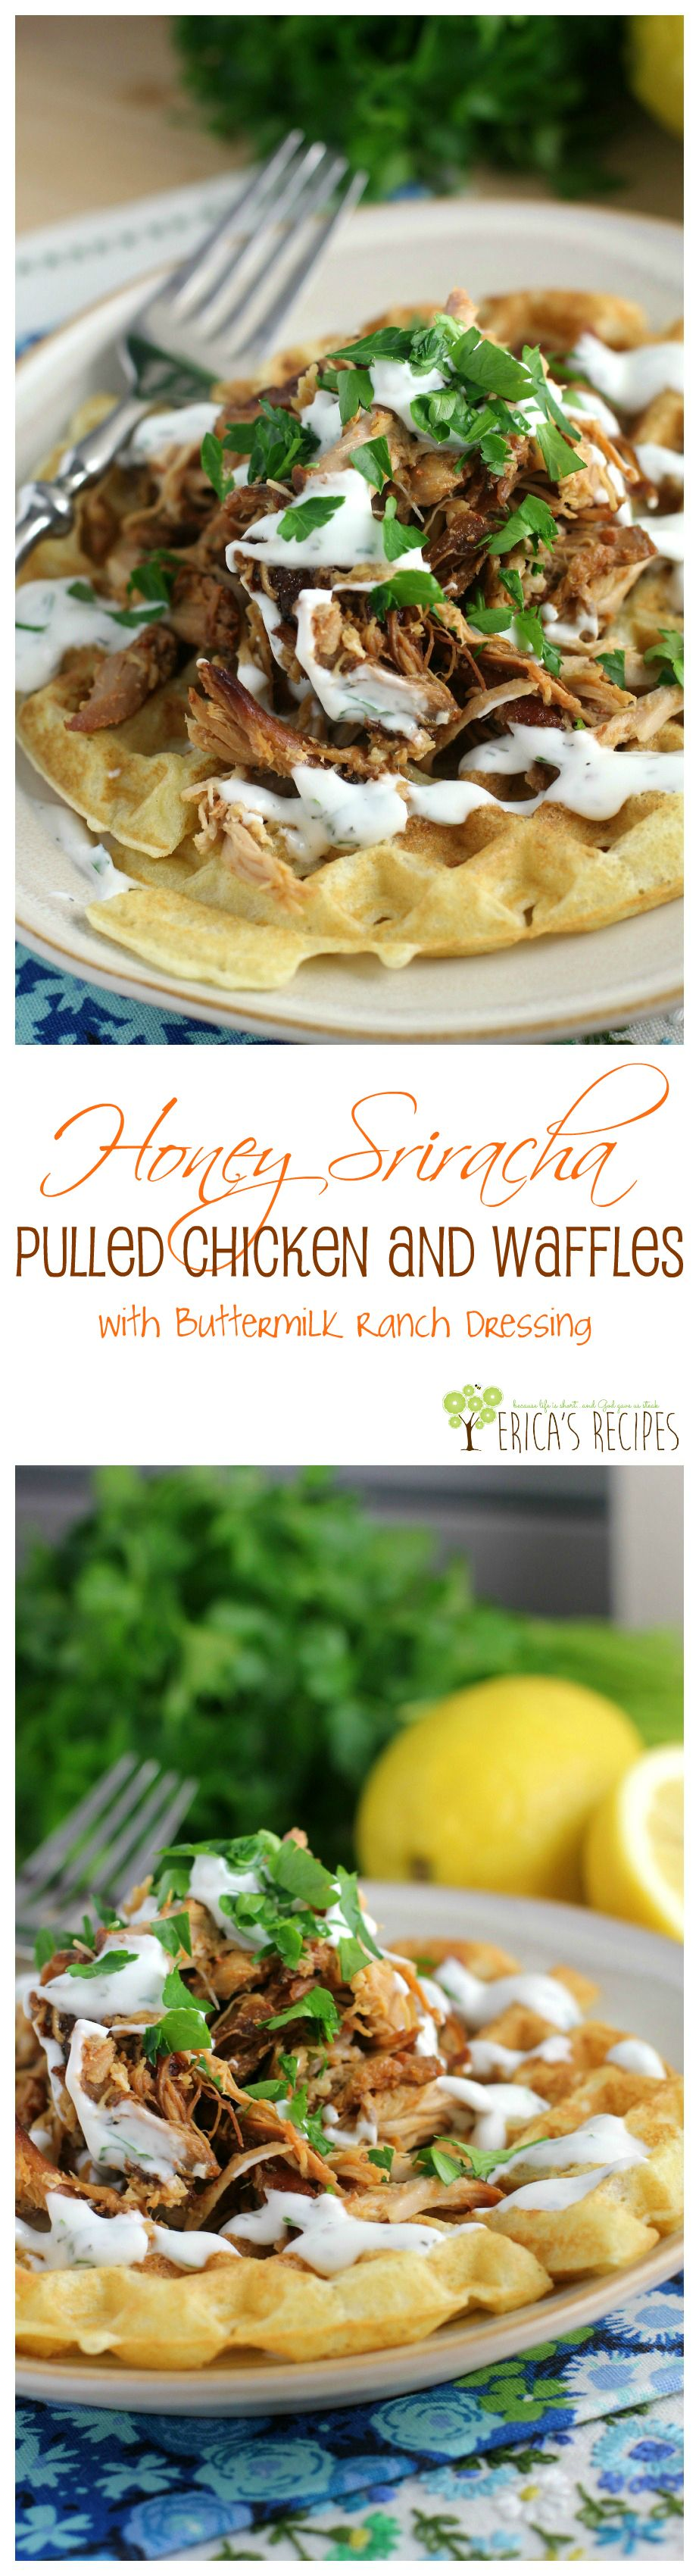 Honey Sriracha Pulled Chicken and Waffles with Buttermilk Ranch Dressing from EricasRecipes.com